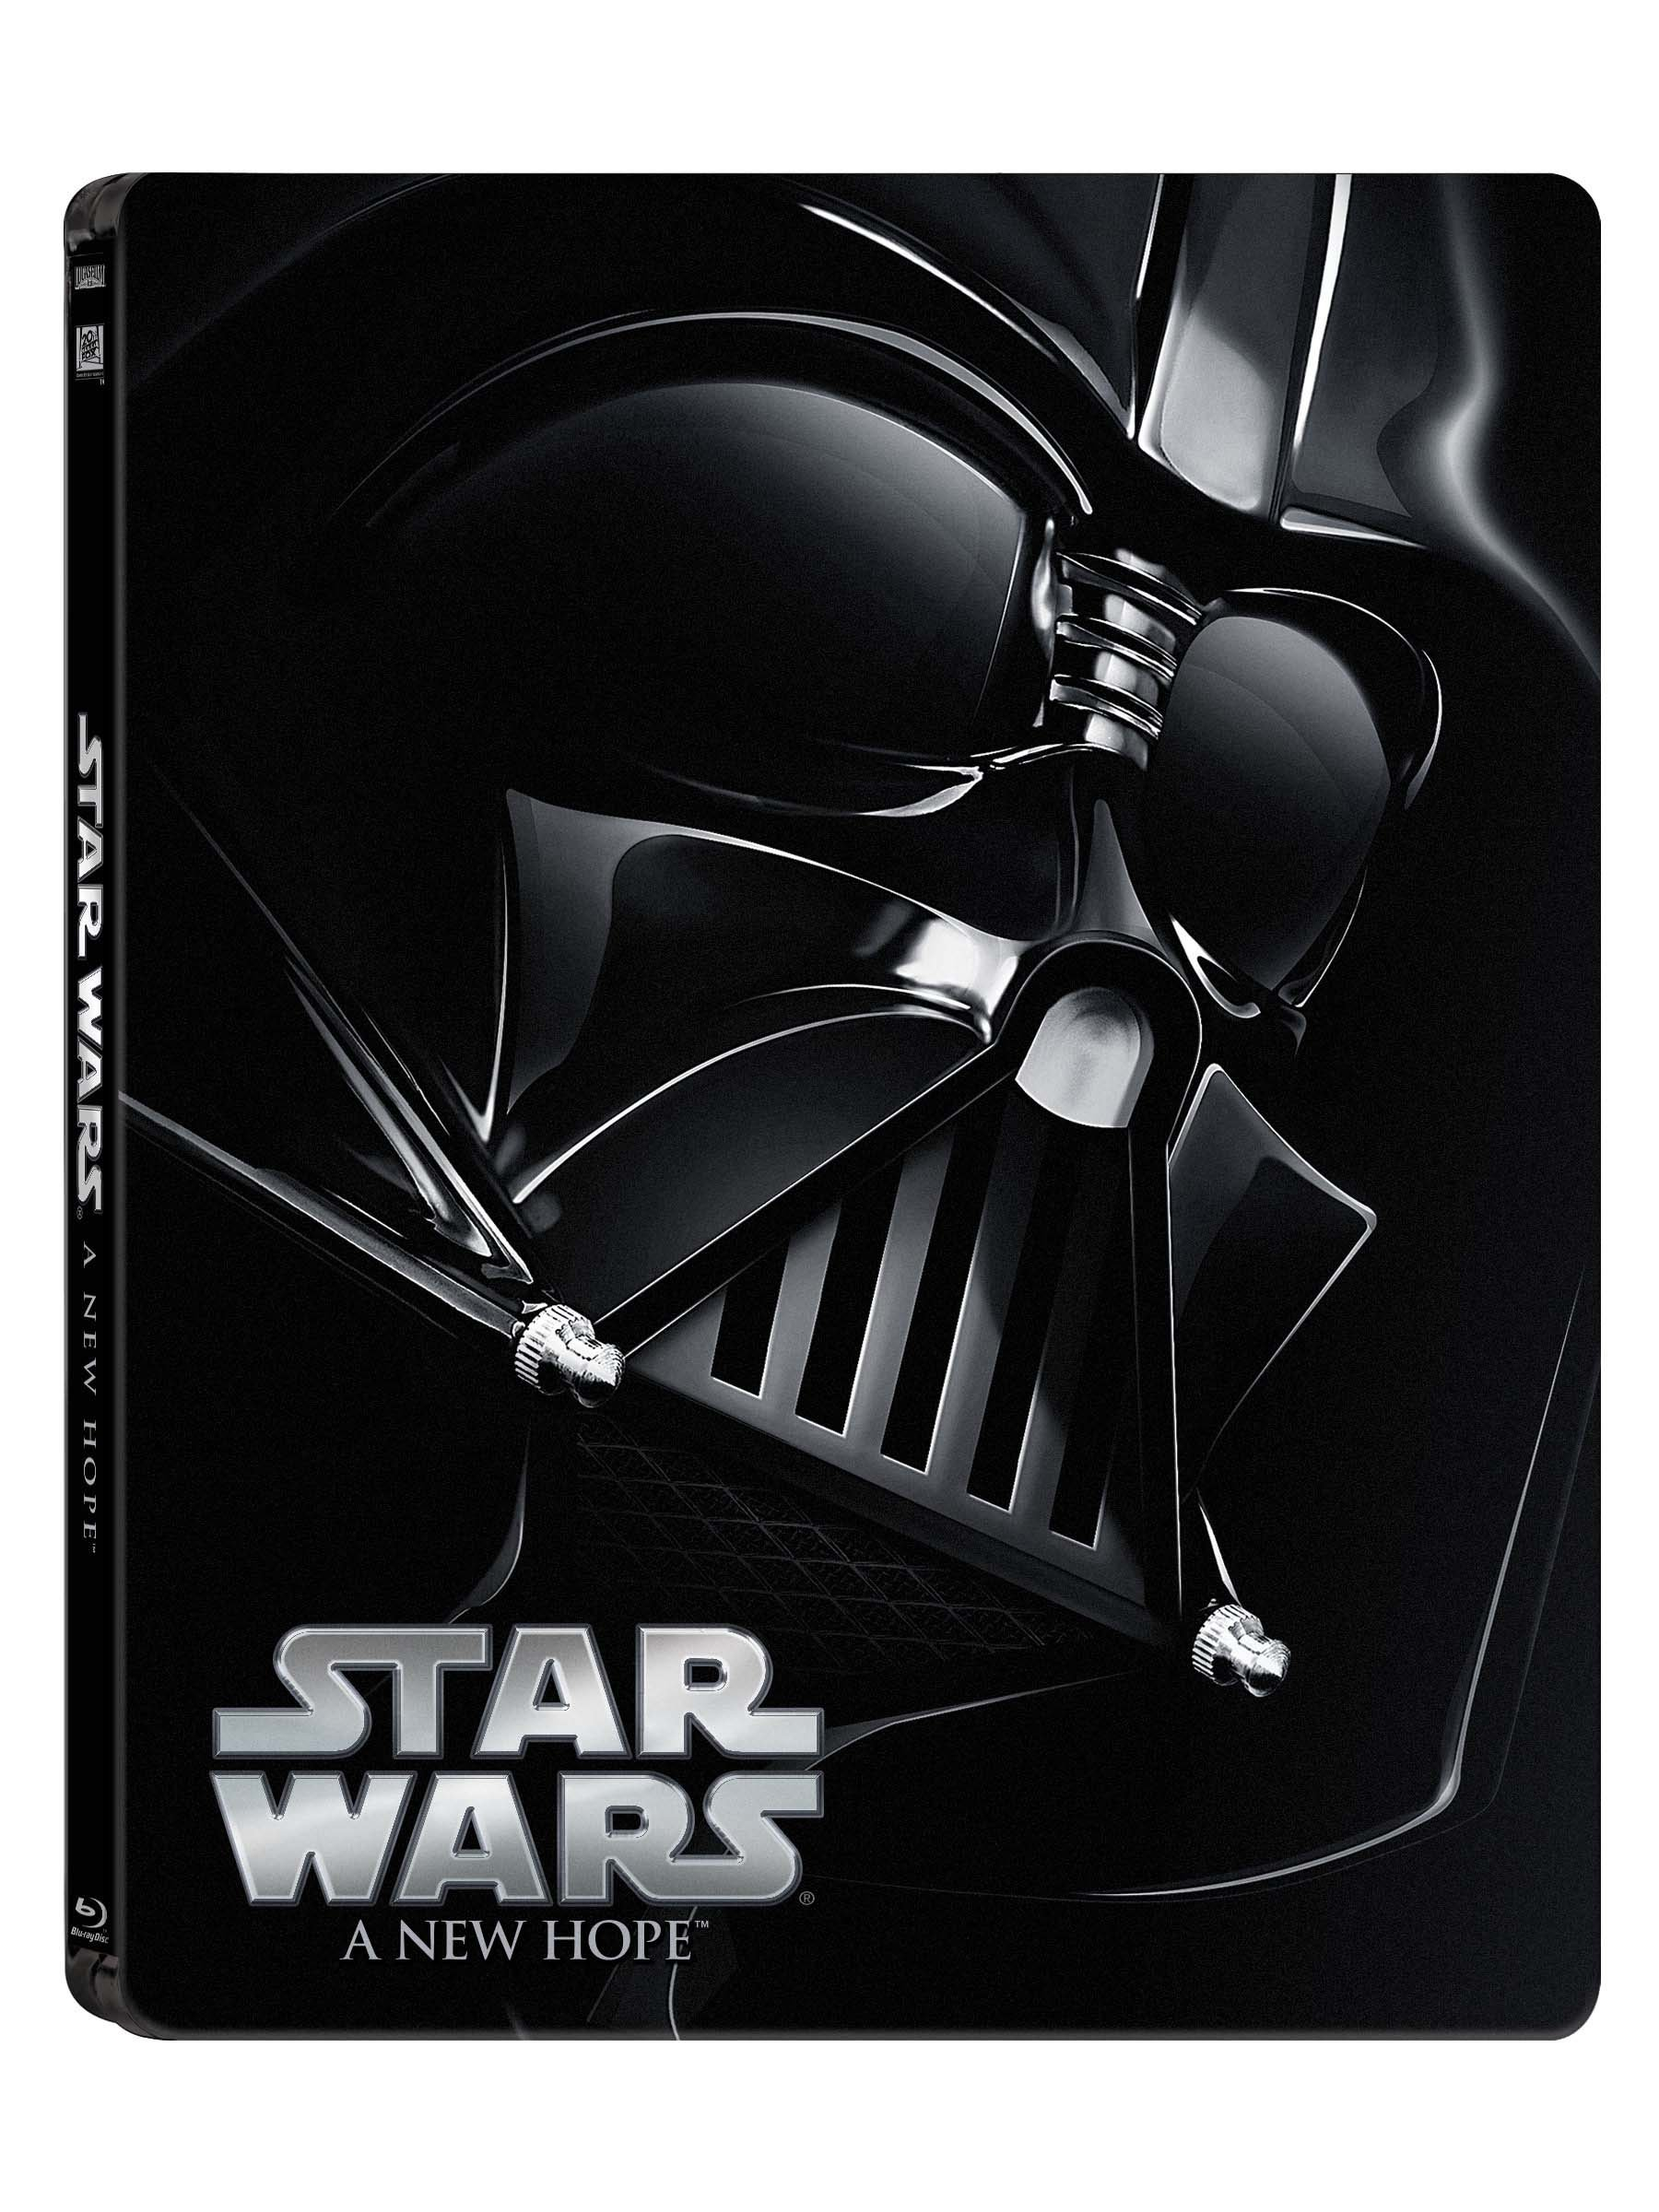 Star Wars: A New Hope (Limited Edition Steel Book) [Blu-ray]